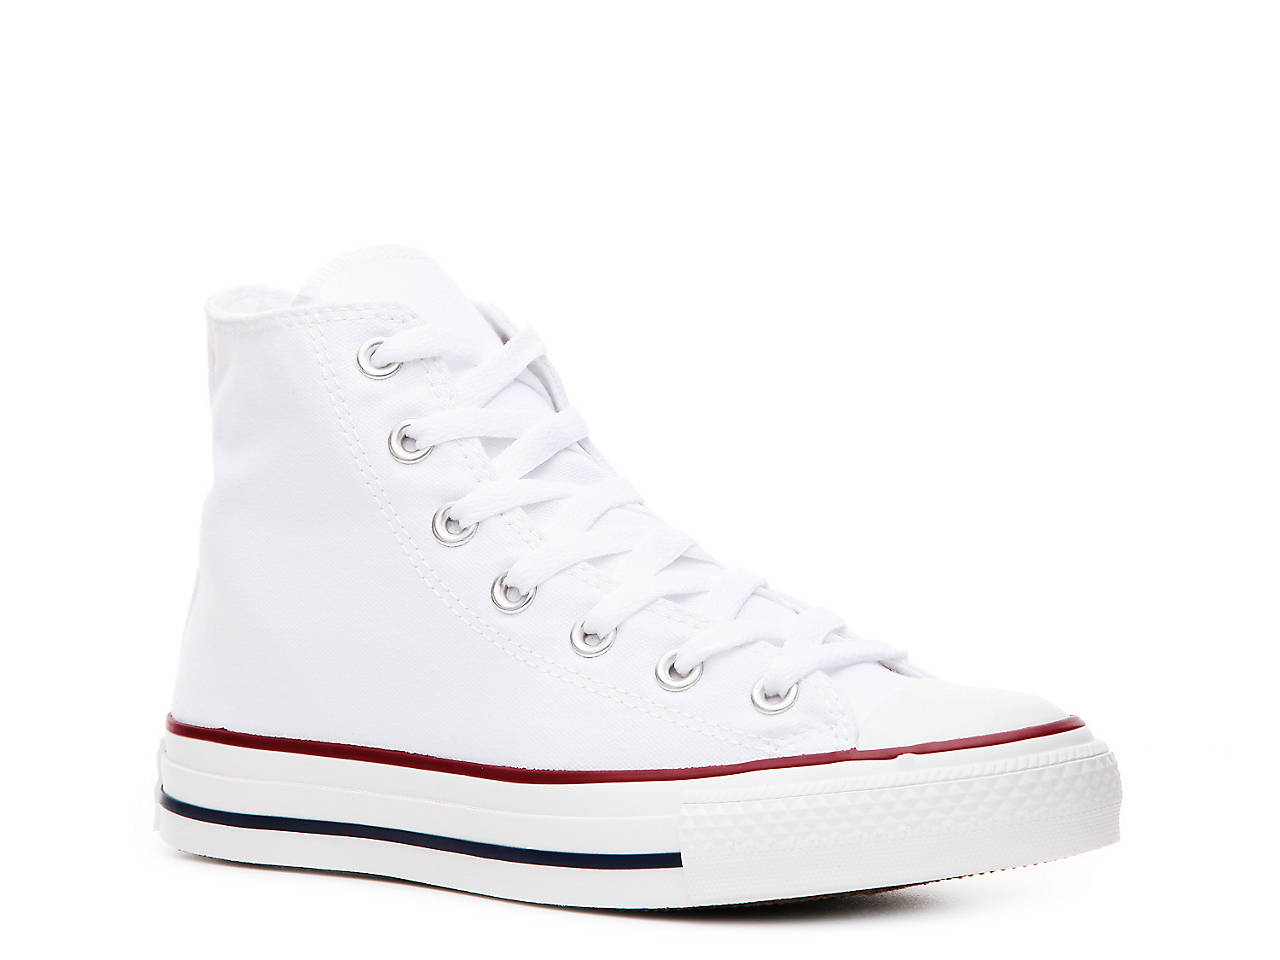 7b103469f7df Converse Chuck Taylor All Star Sneaker - Women s Women s Shoes